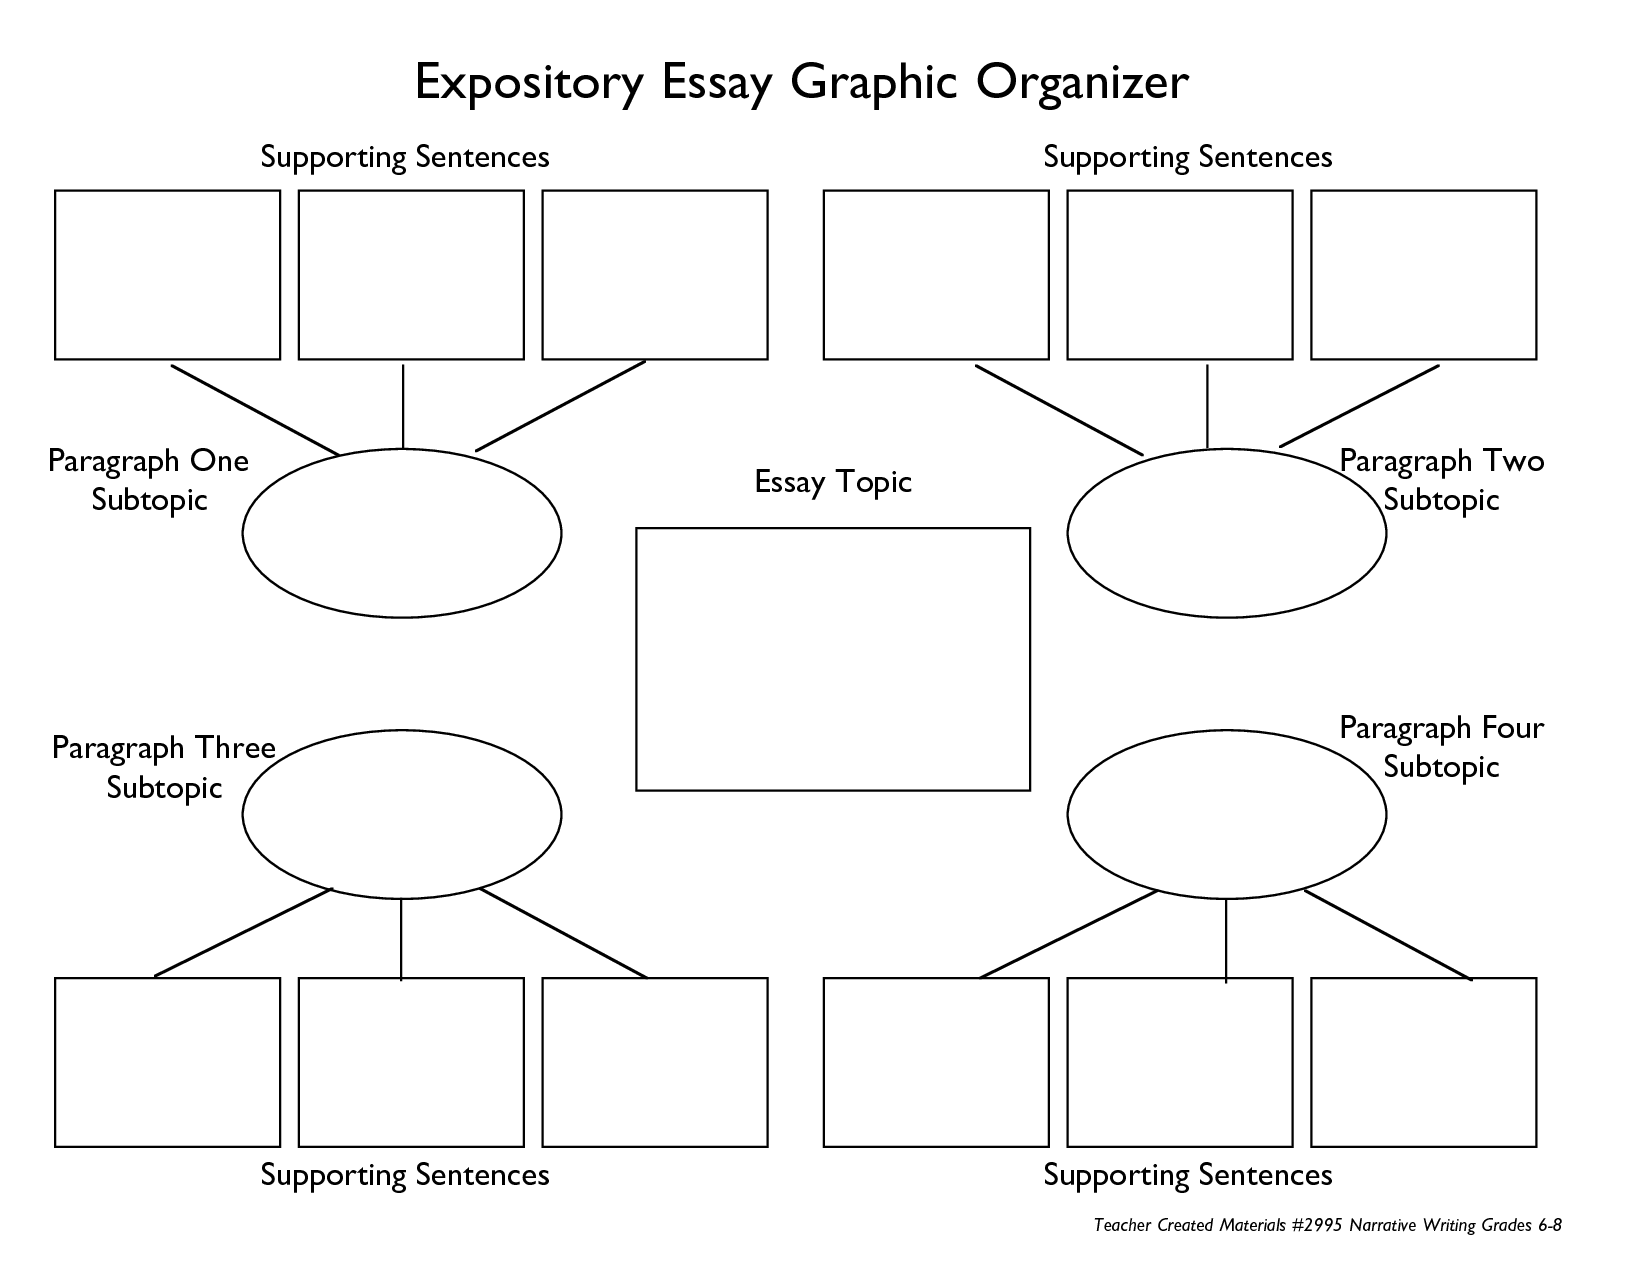 b>writing< b> expository <b>essay< b> graphic organizer on <b <b>writing< b> expository <b>essay< b